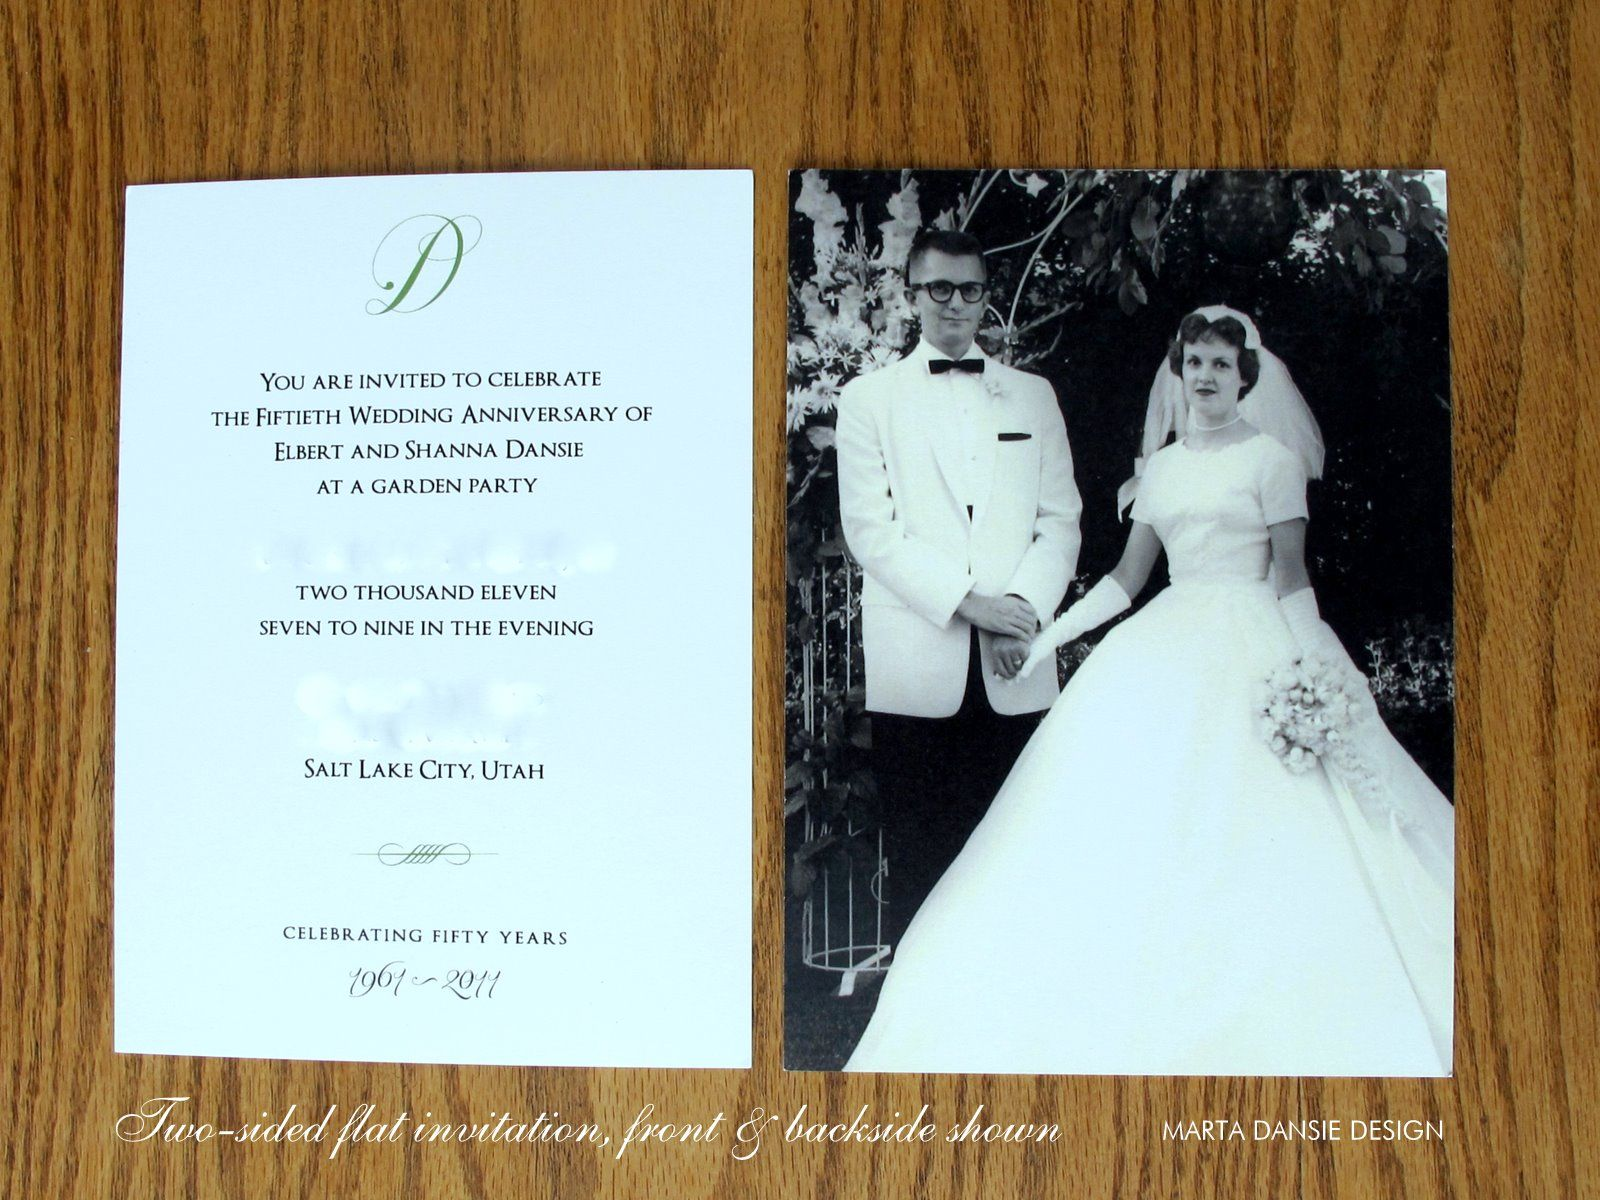 50th Wedding Invitation Templates: A Fun Invitation For A 50th Wedding Anniversary Using